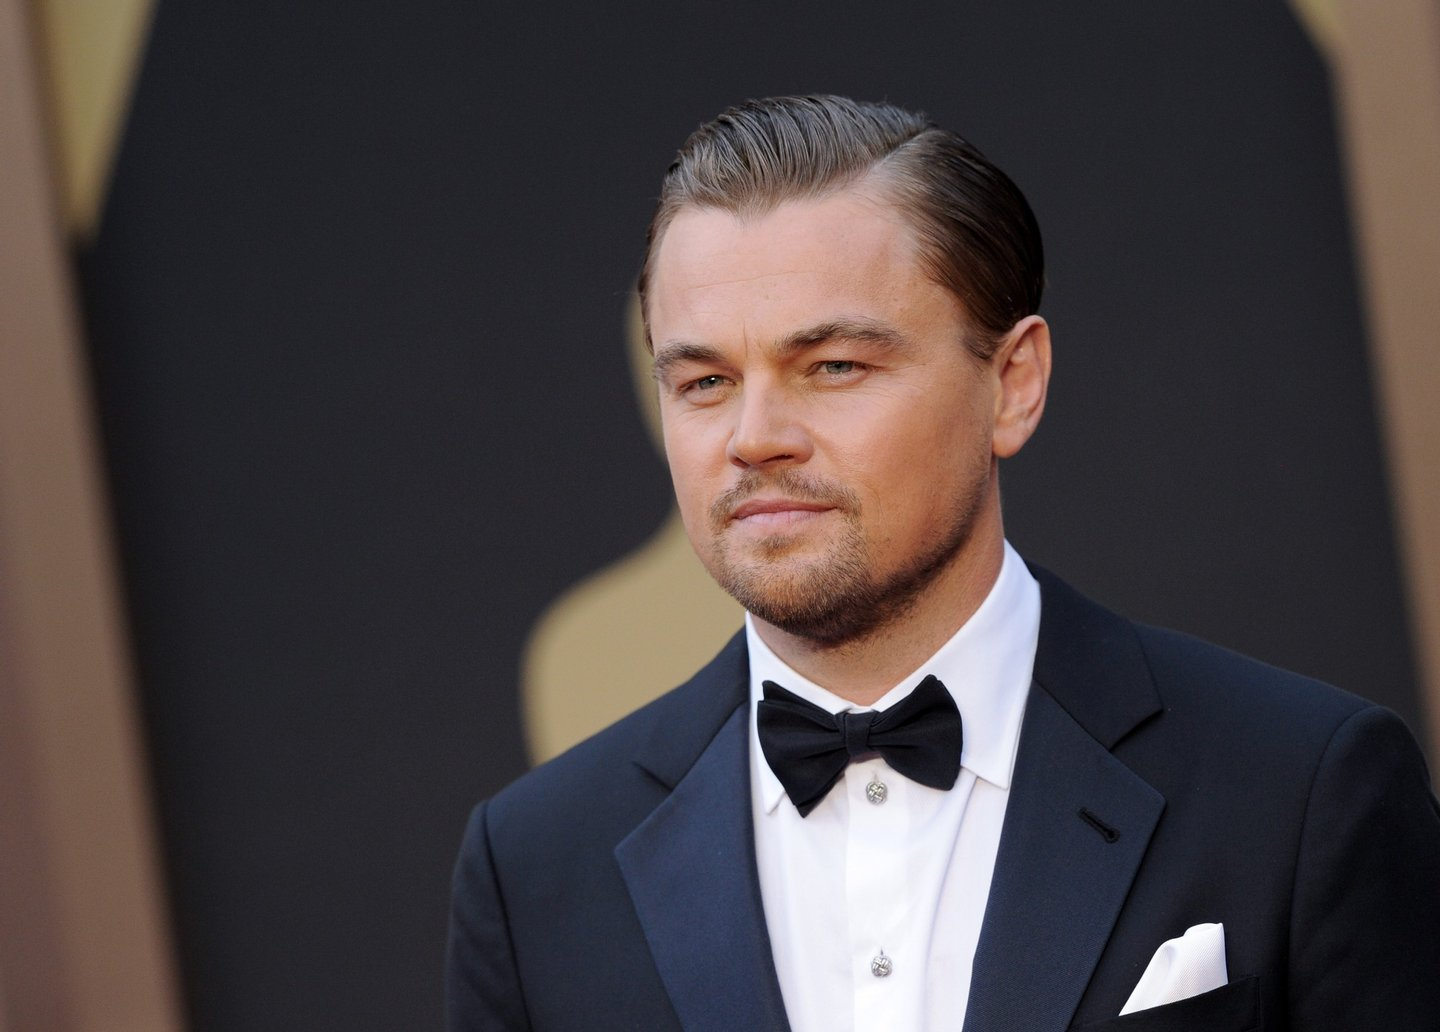 HOLLYWOOD, CA - MARCH 02: Actor Leonardo DiCaprio arrives at the 86th Annual Academy Awards at Hollywood & Highland Center on March 2, 2014 in Hollywood, California. (Photo by Axelle/Bauer-Griffin/FilmMagic)